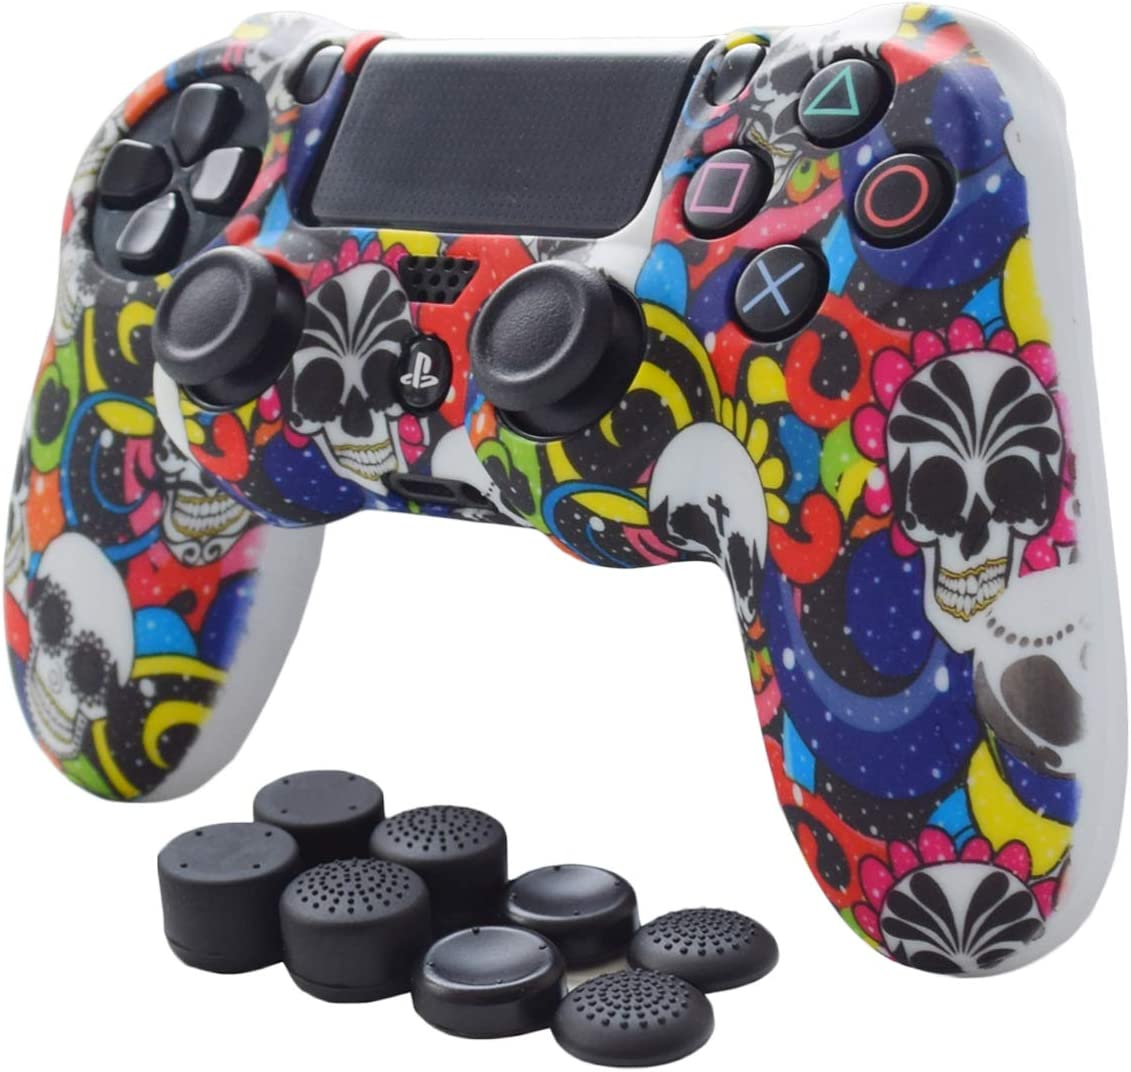 PS4 Controller Cover,Pandaren Anti-Slip Silicone PS4 Skin Set for PS4 /Slim/PRO Controller(Blue B Controller Skin x 1 + FPS PRO Thumb Grips x 8)